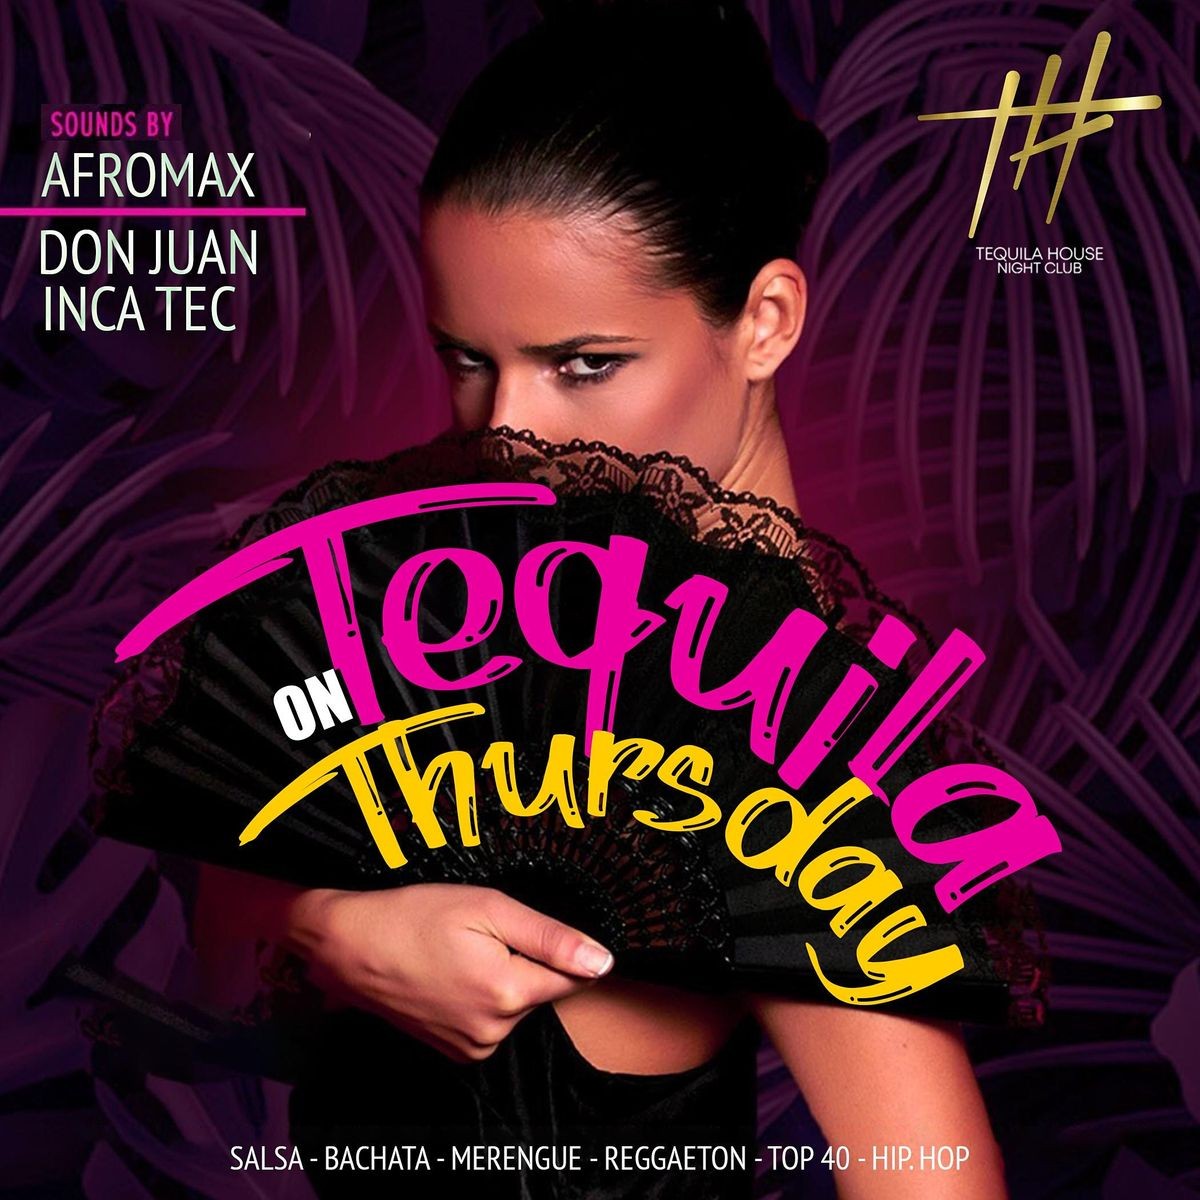 TEQUILA ON THURSDAY @ Tequila House (July 22)